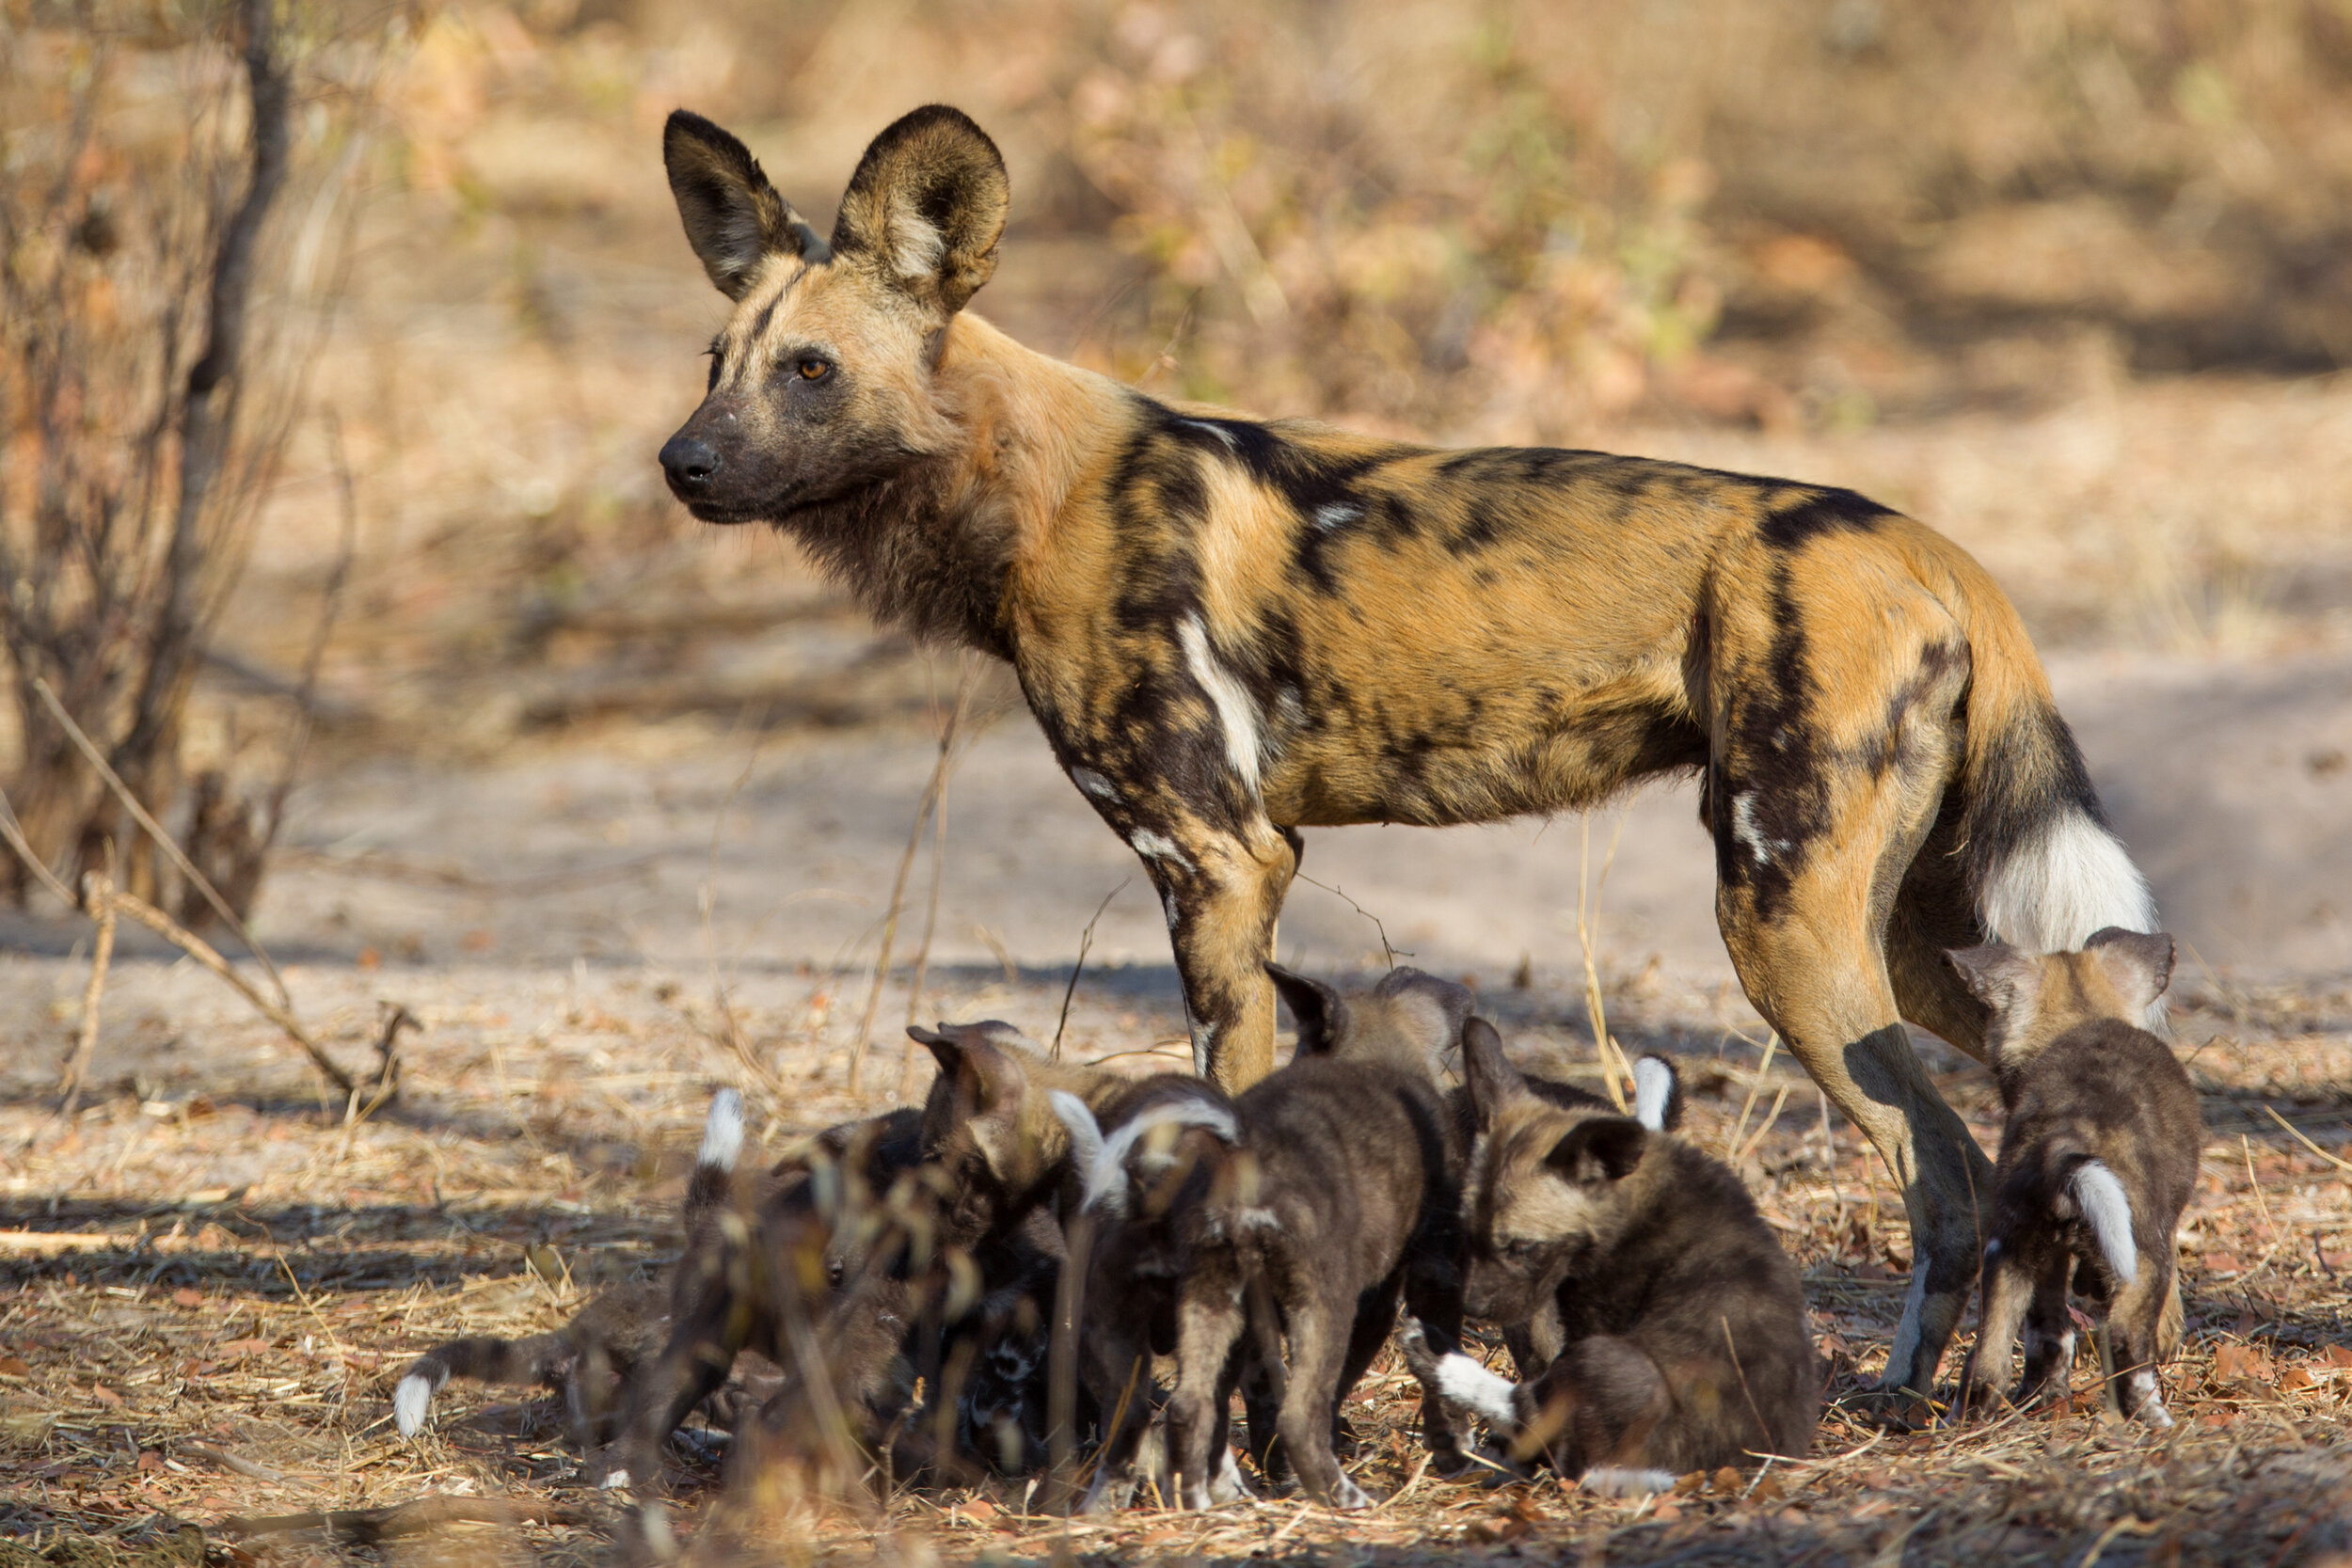 ©Will Burrard Lucas: Browny and Socks' (his alpha female) pups in 2013 at the den.